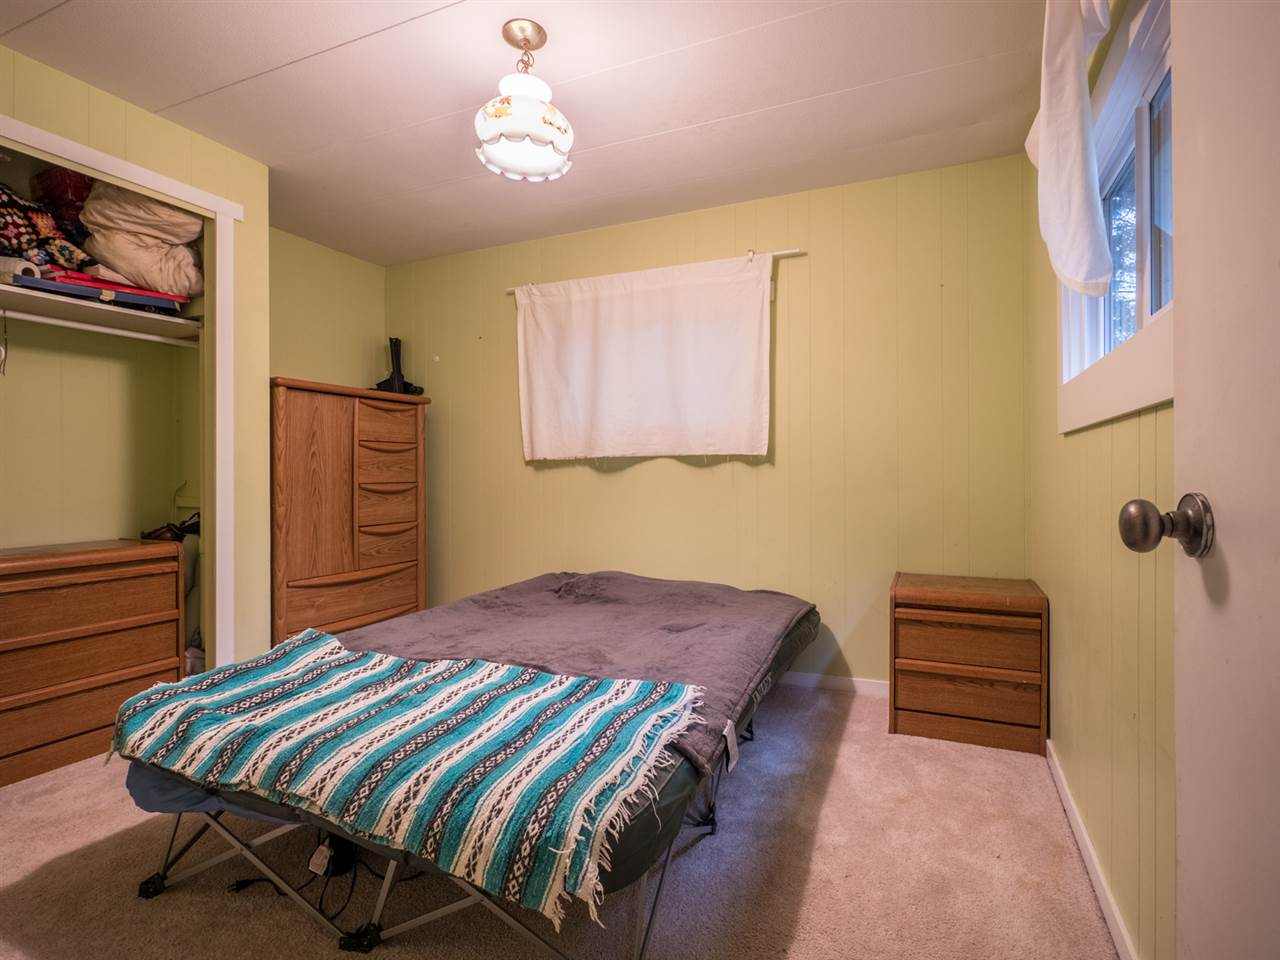 Photo 12: Photos: 5592 WAKEFIELD Road in Sechelt: Sechelt District Manufactured Home for sale (Sunshine Coast)  : MLS®# R2230720